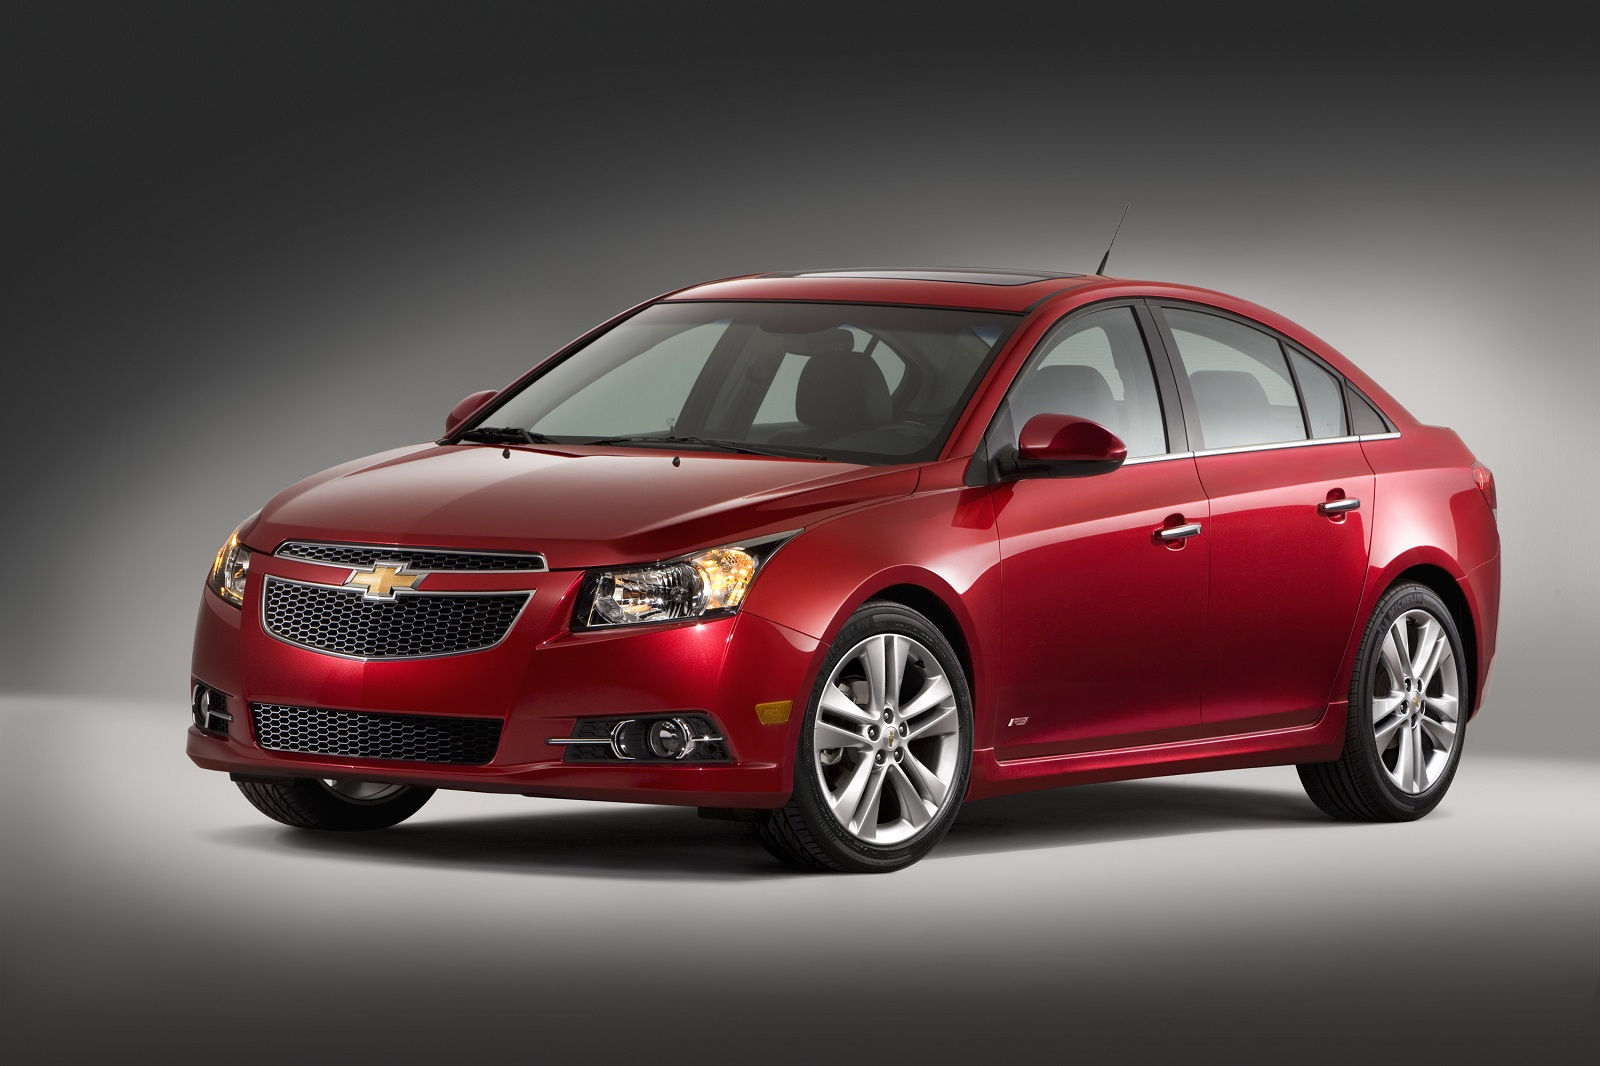 Cruze 2013 chevy cruze ltz for sale : GM Stops Sales Of 2013-2014 Chevrolet Cruze: What's Affected?